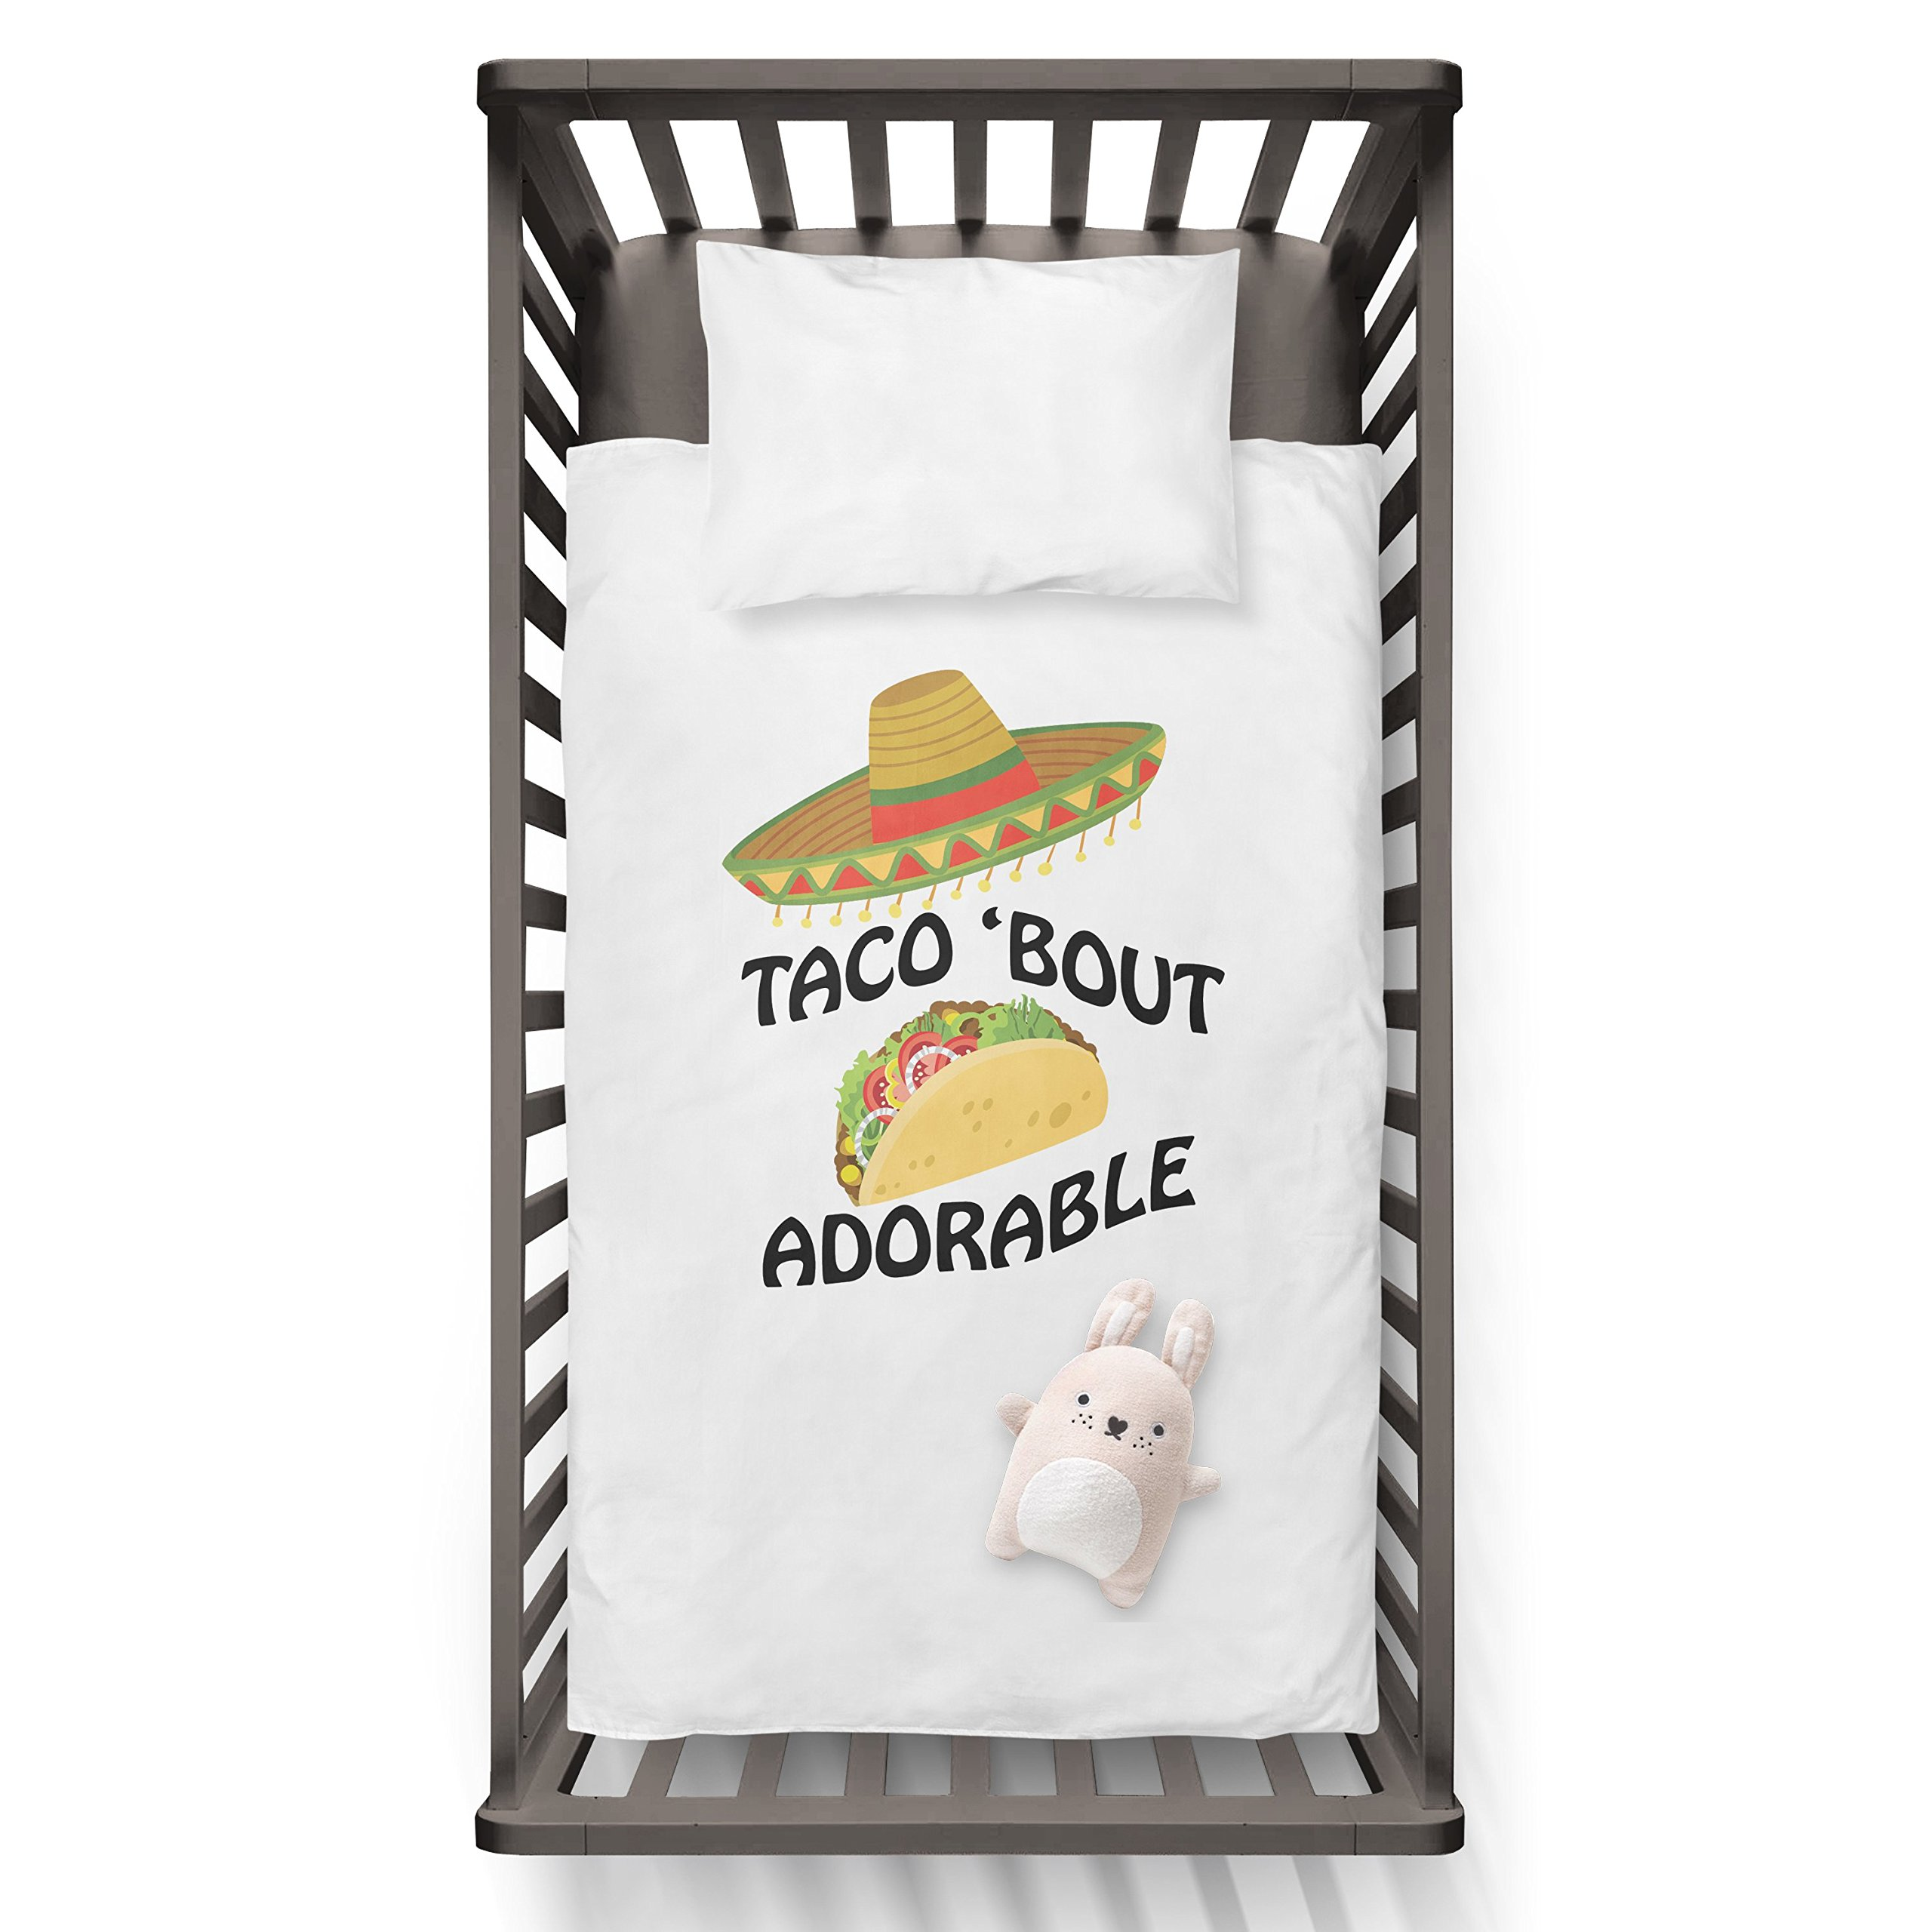 Taco 'Bout Adorable Funny Humor Hip Baby Duvet /Pillow set,Toddler Duvet,Oeko-Tex,Personalized duvet and pillow,Oraganic,gift